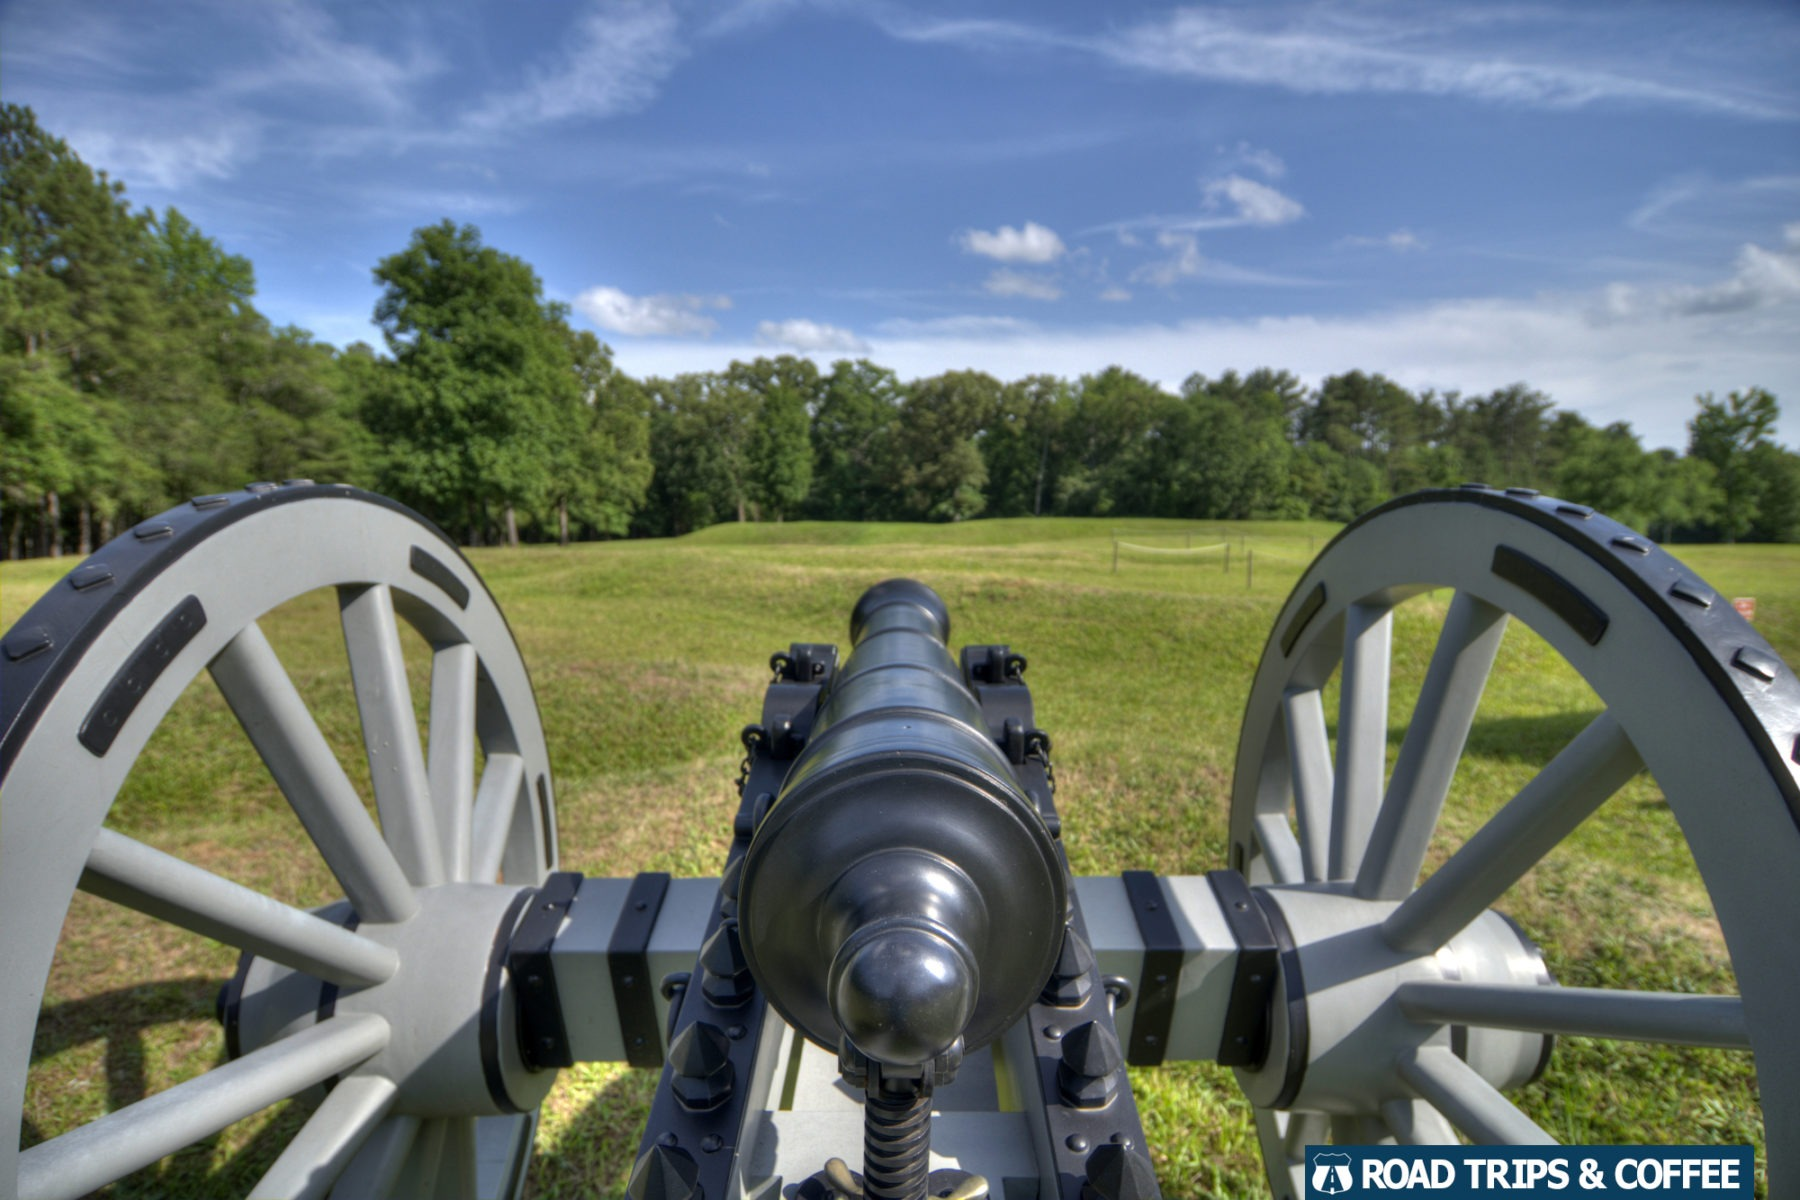 A canon overlooking a large field along the hiking trail at Ninety Six National Historic Site in Ninety Six, South Carolina